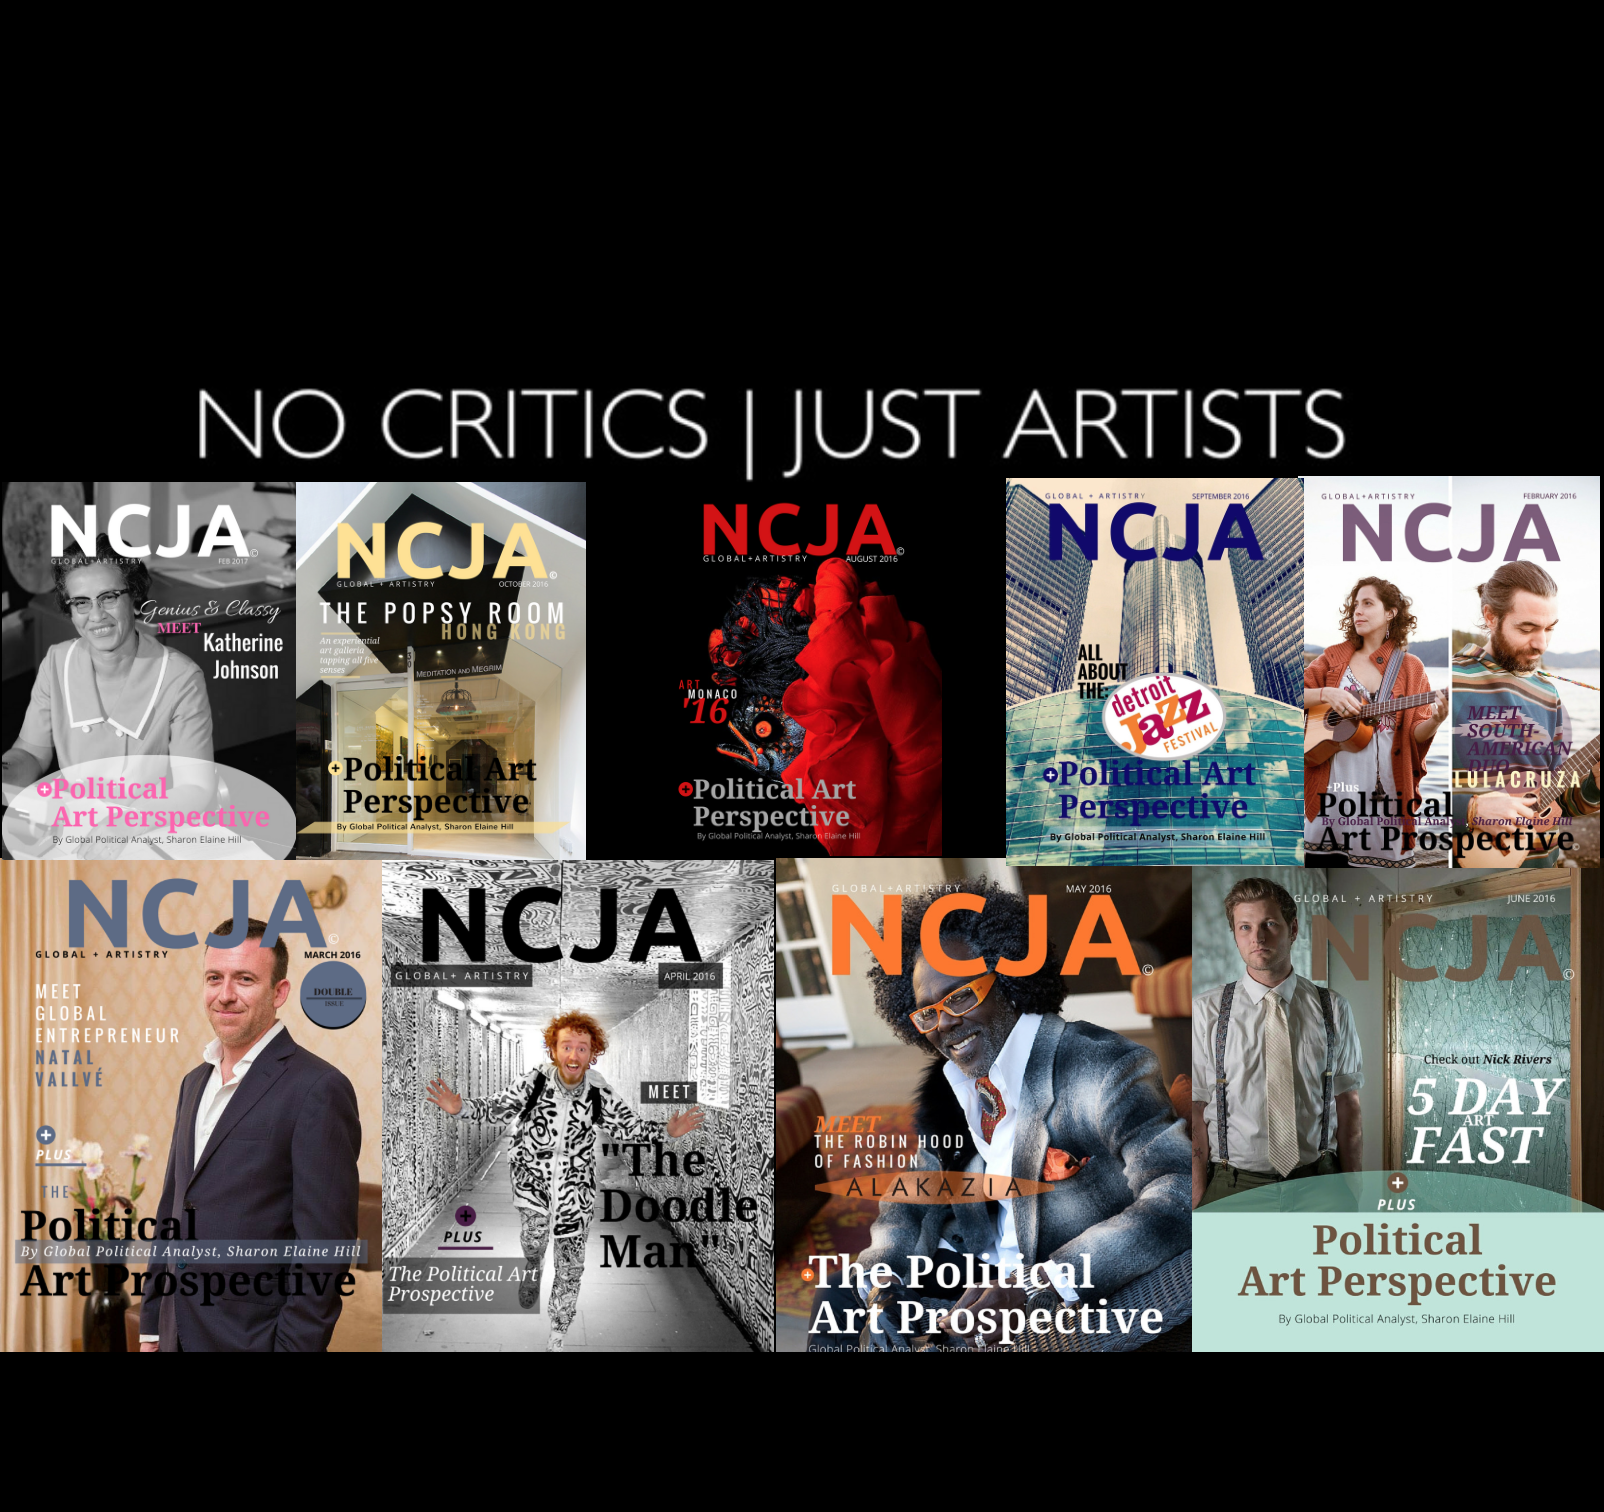 Check out our affiliates #NoCriticsJustArtists here on #NoCriticsJustPolitics